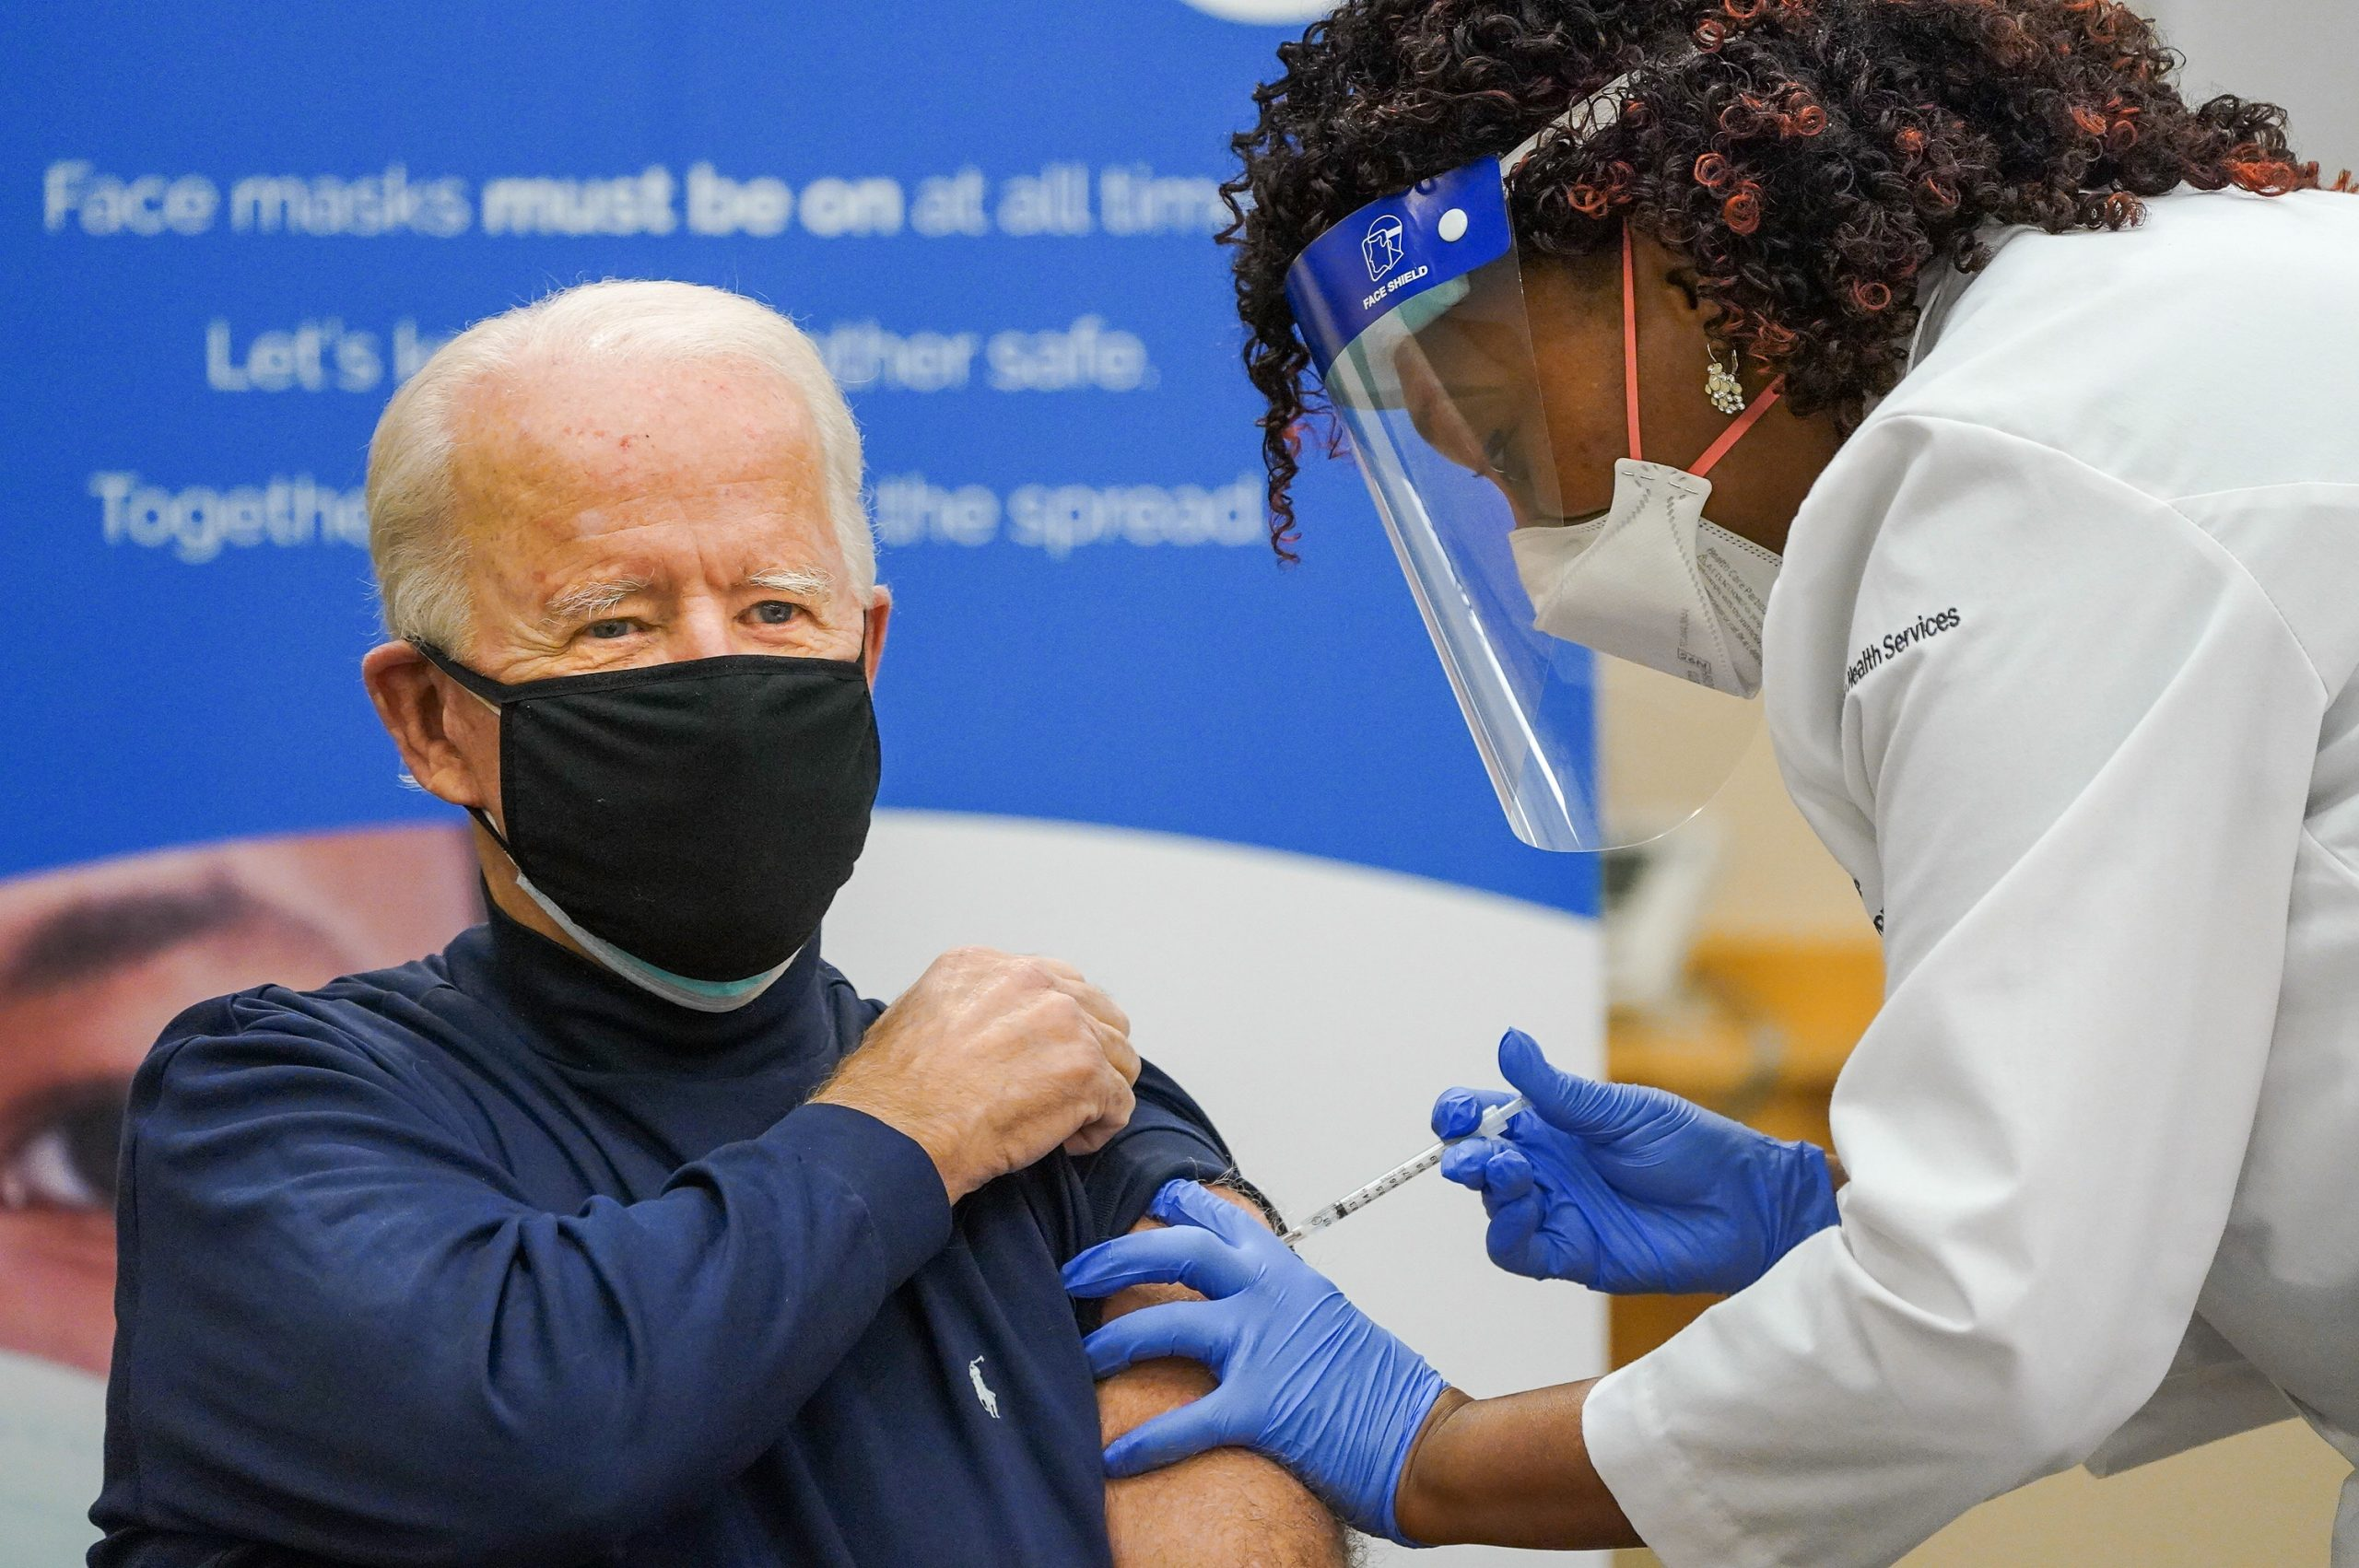 US president- elect Joe Biden: Today, I received the COVID-19 vaccine. To the scientists and researchers who worked tirelessly to make this possible — thank you. We owe you an awful lot. And to the American people — know there is nothing to worry about. When the vaccine is available, I urge you to take it.